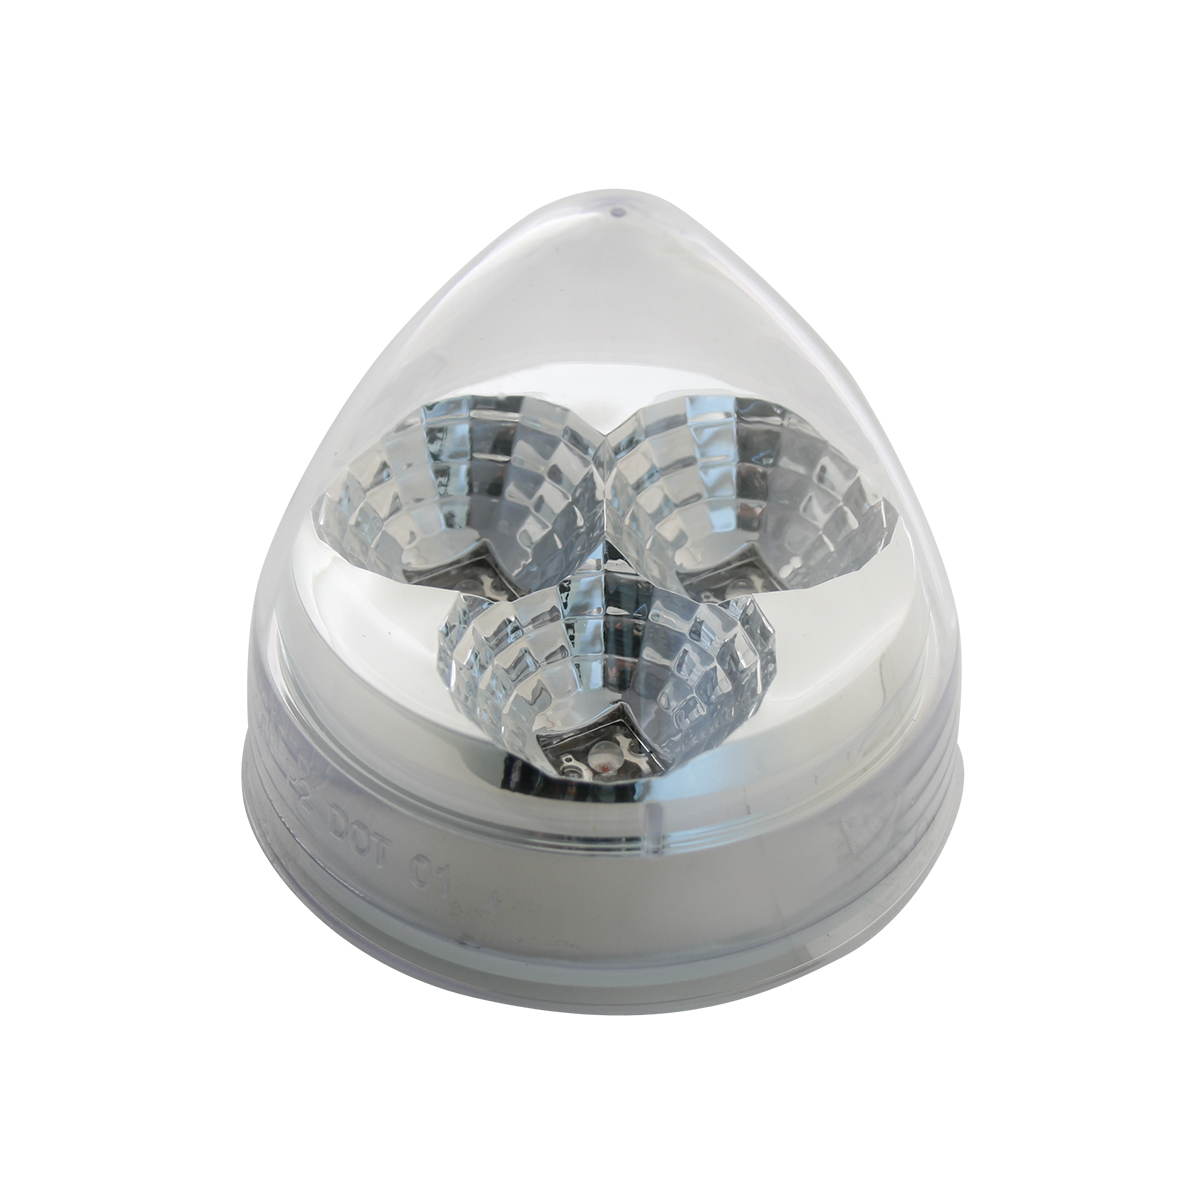 Beehive Spyder LED in Clear Lens